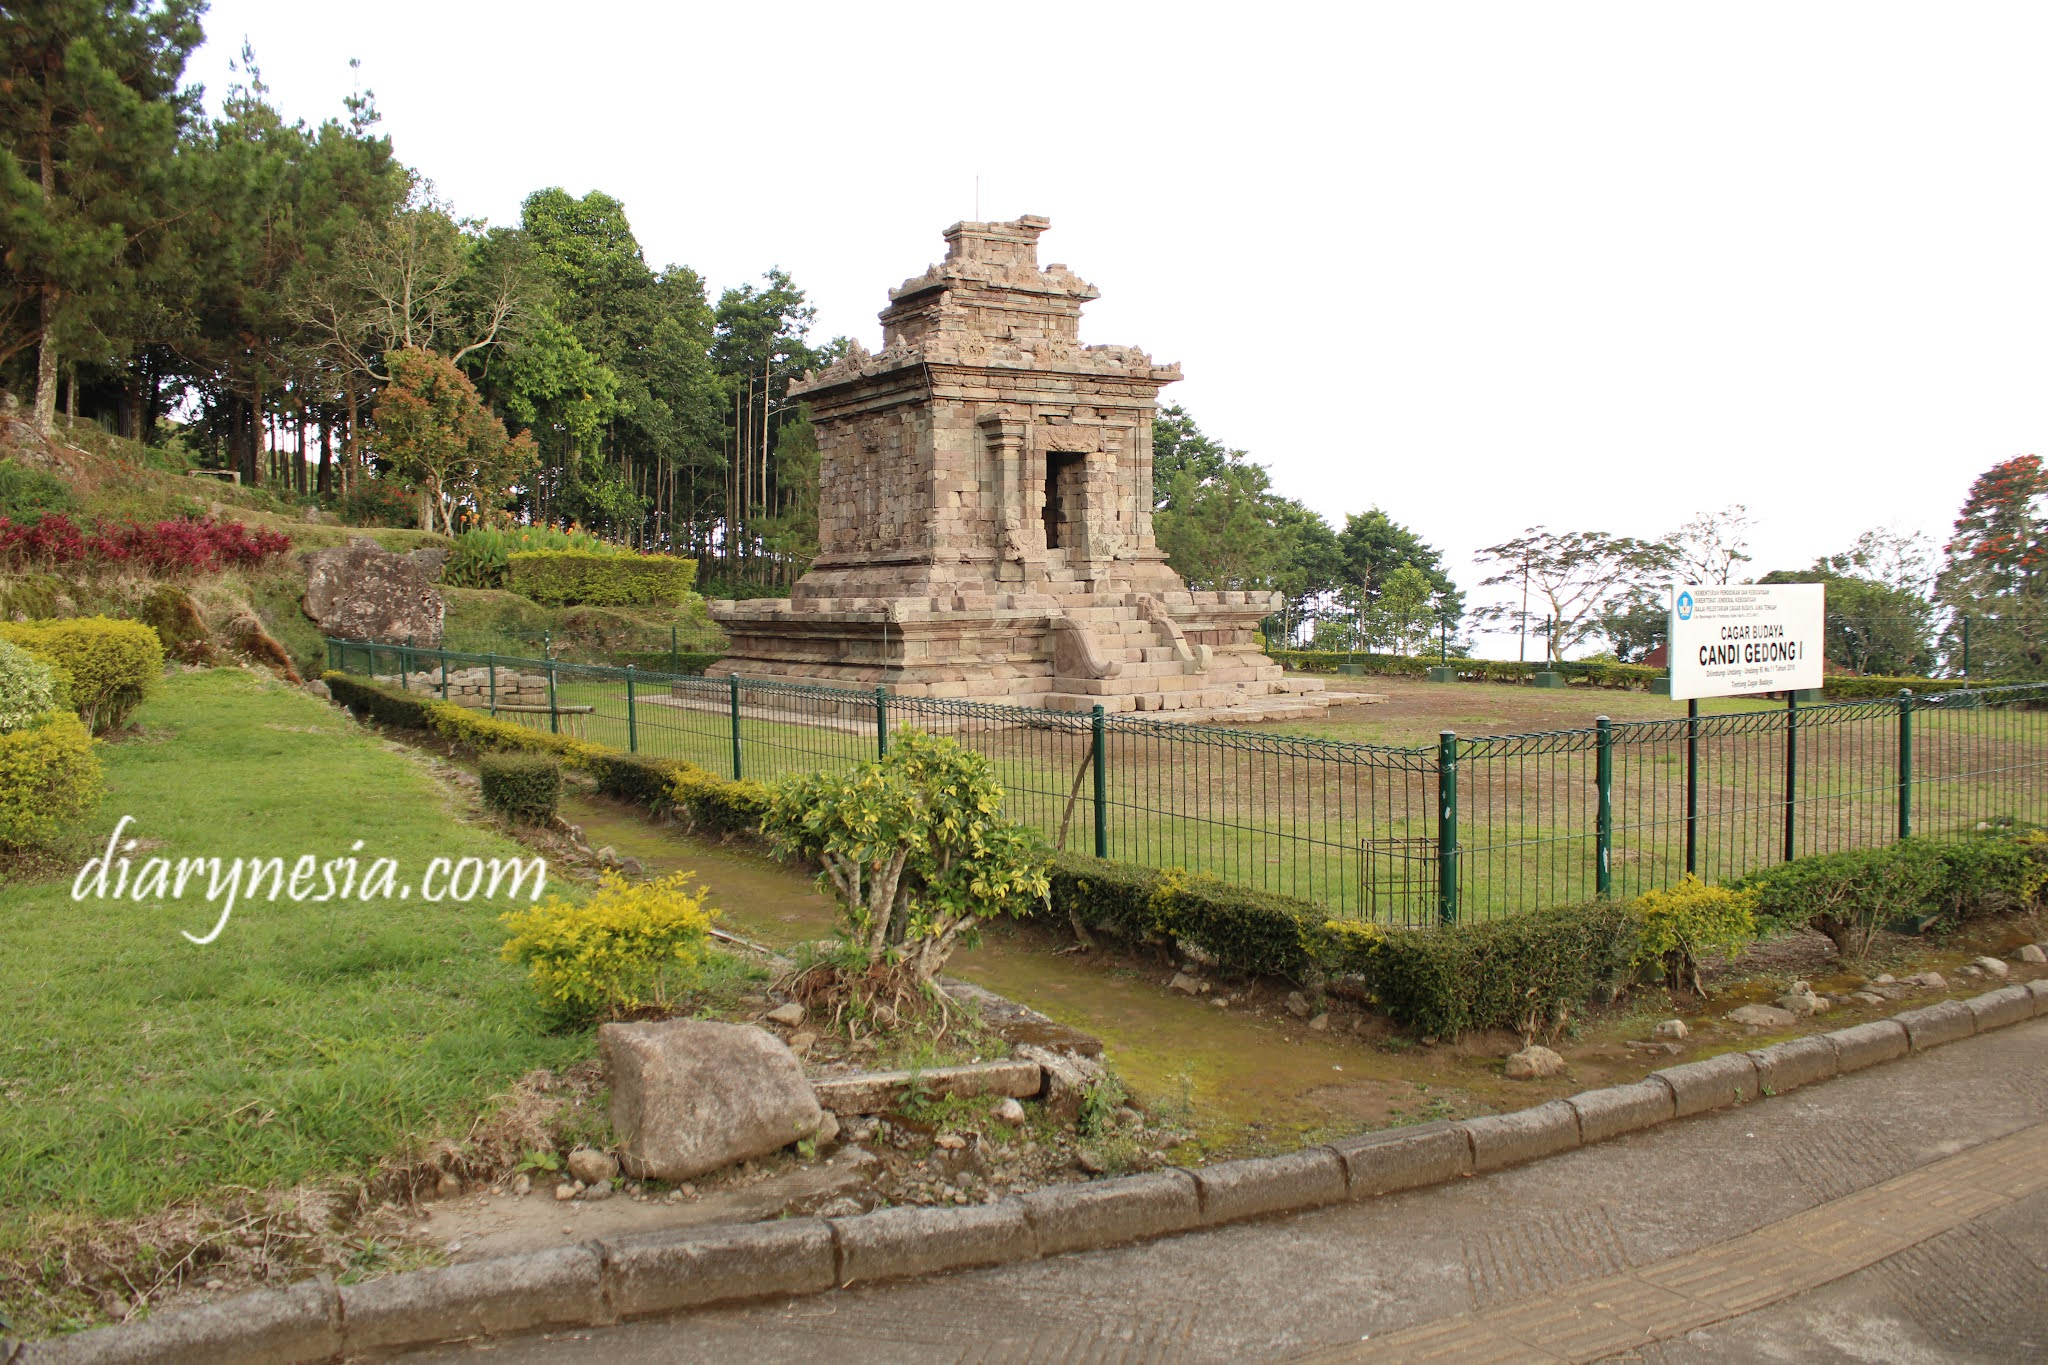 Popular Tourist Attractions and Best Places to Visit in Ambarawa, diarynesia